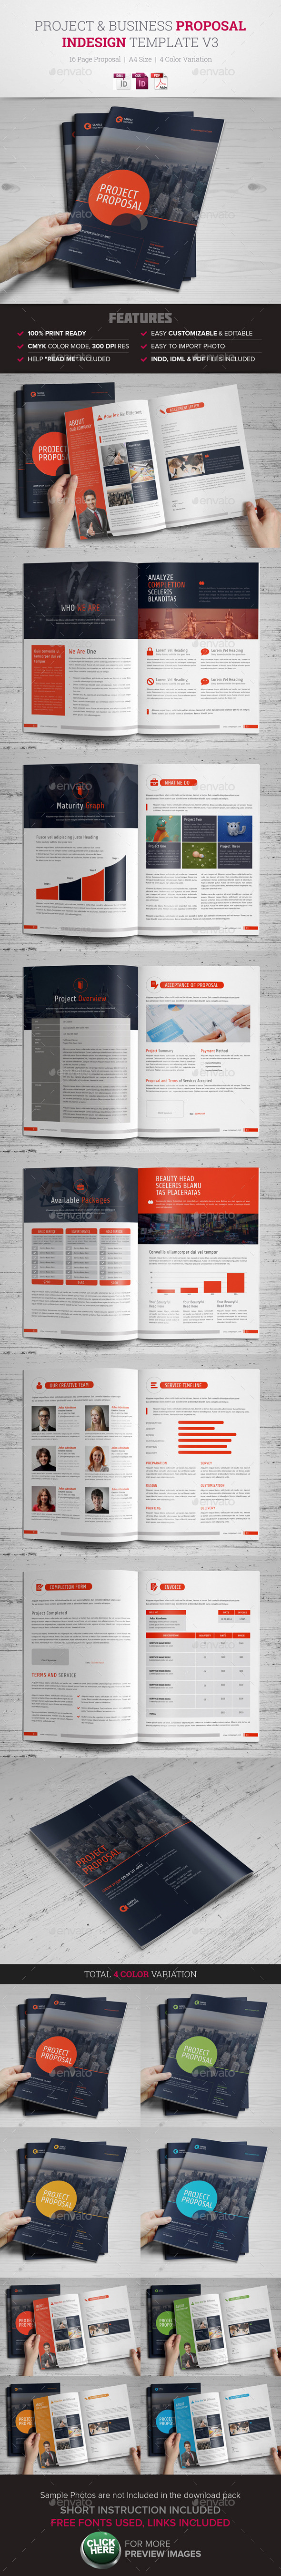 GraphicRiver Project & Business Proposal Template v3 10499199